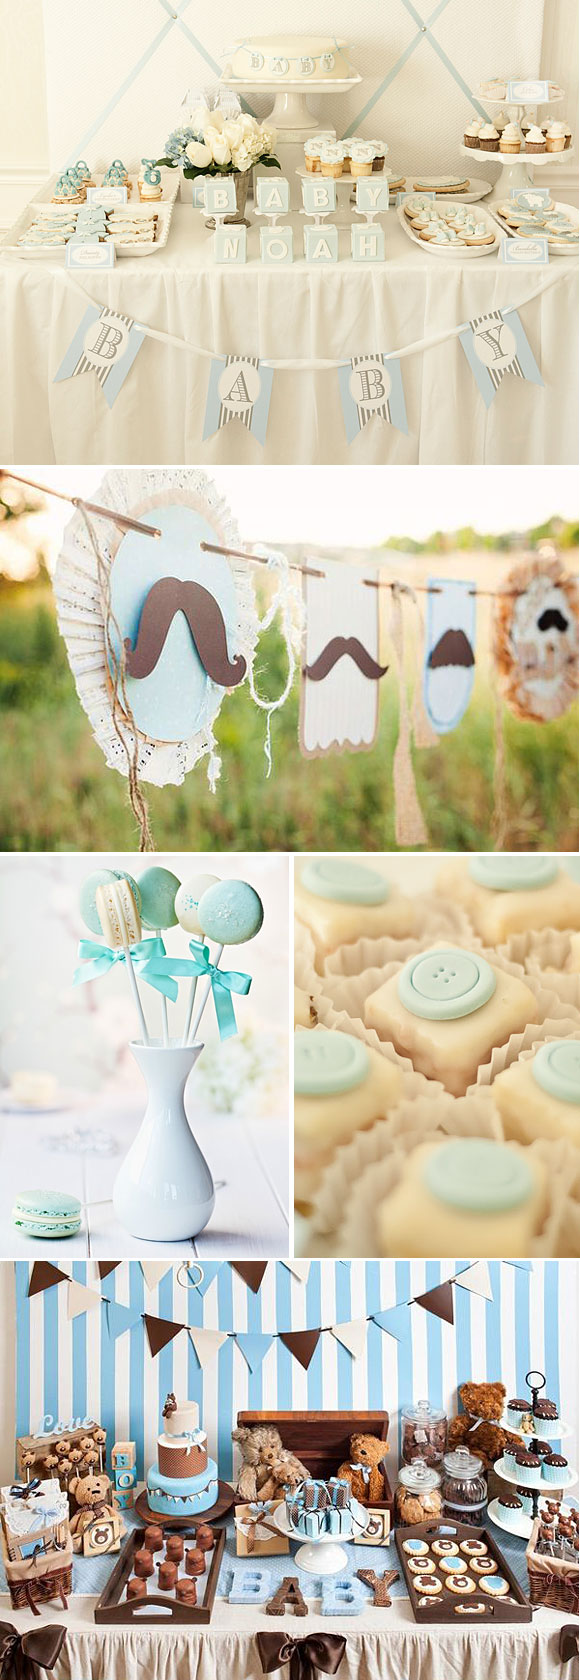 Ideas para decorar un baby shower de niños